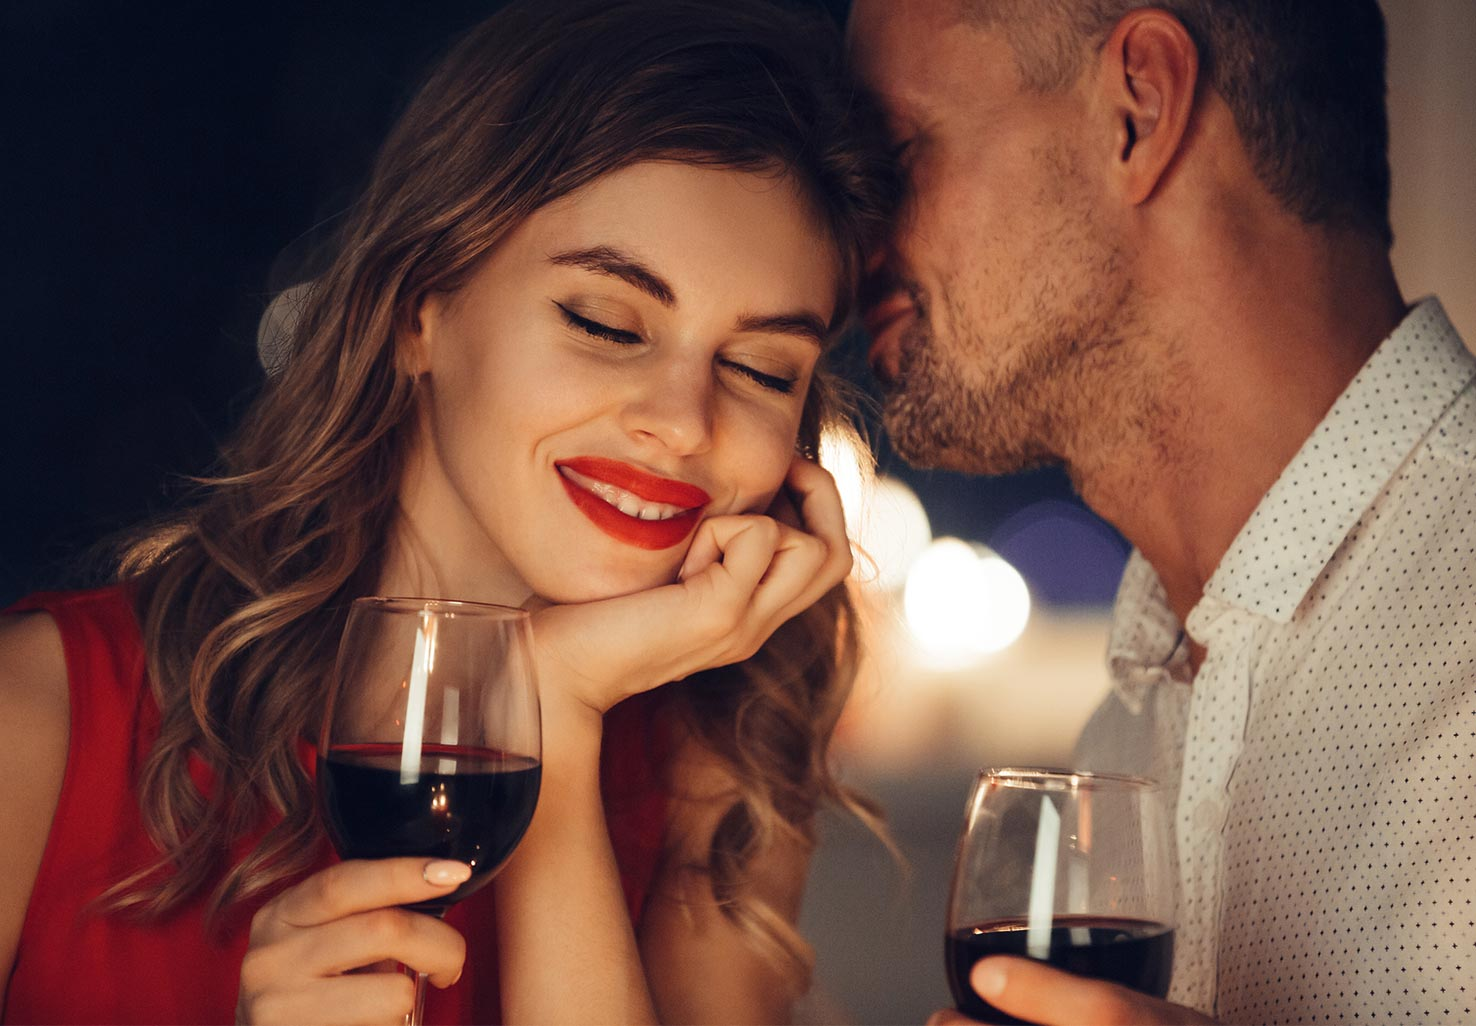 A couple drinking wine sharing a romantic moment